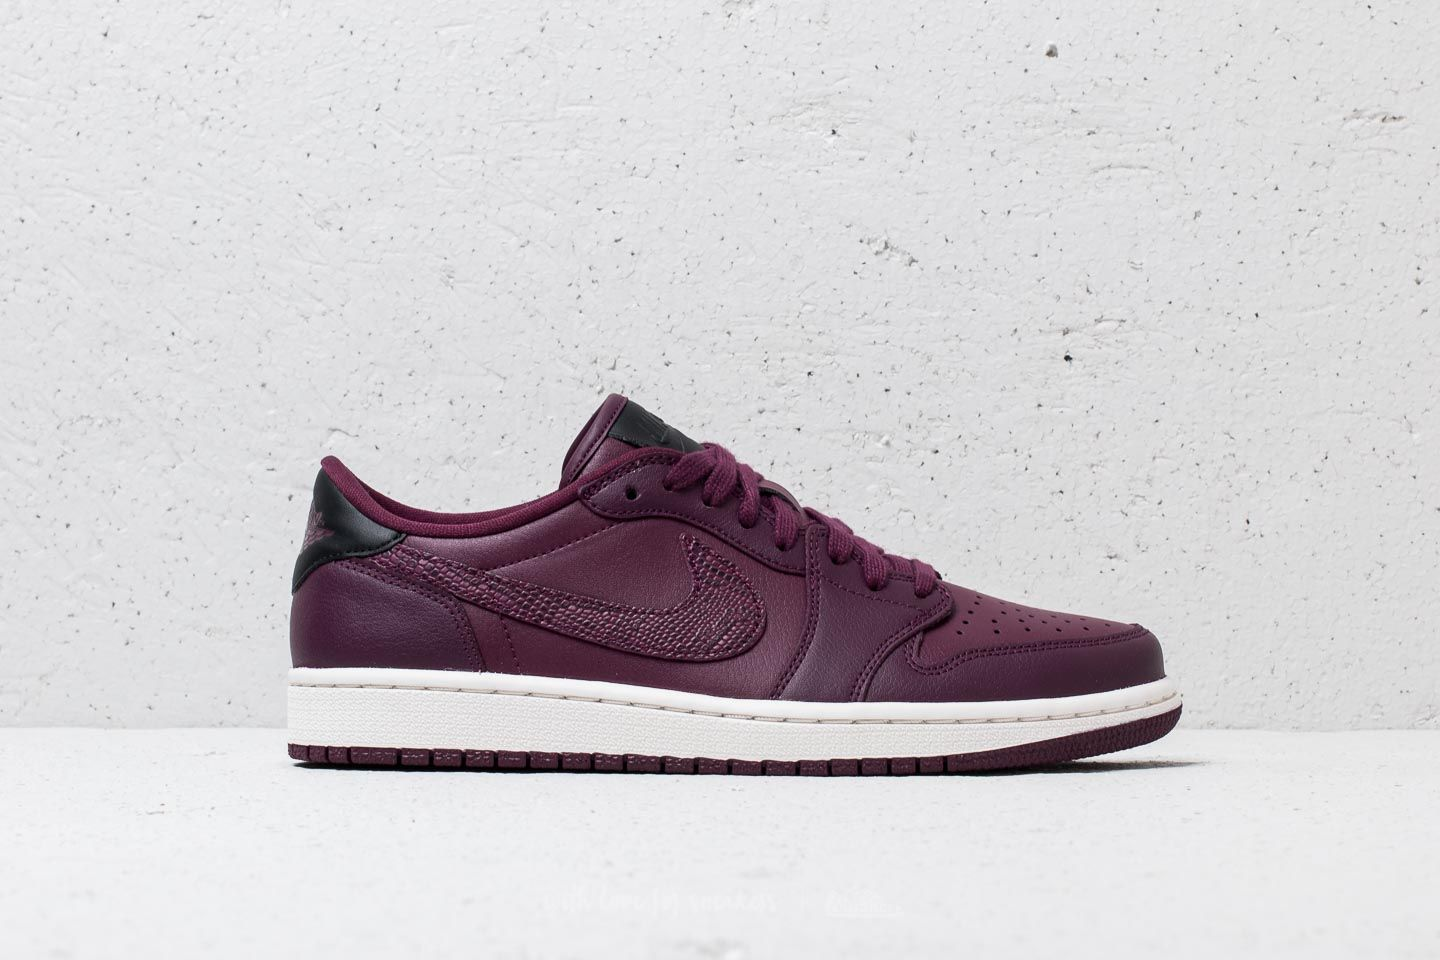 on sale fe497 06ced Wmns Air Jordan 1 Retro Low OG Bordeaux  Black-Phantom at a great price